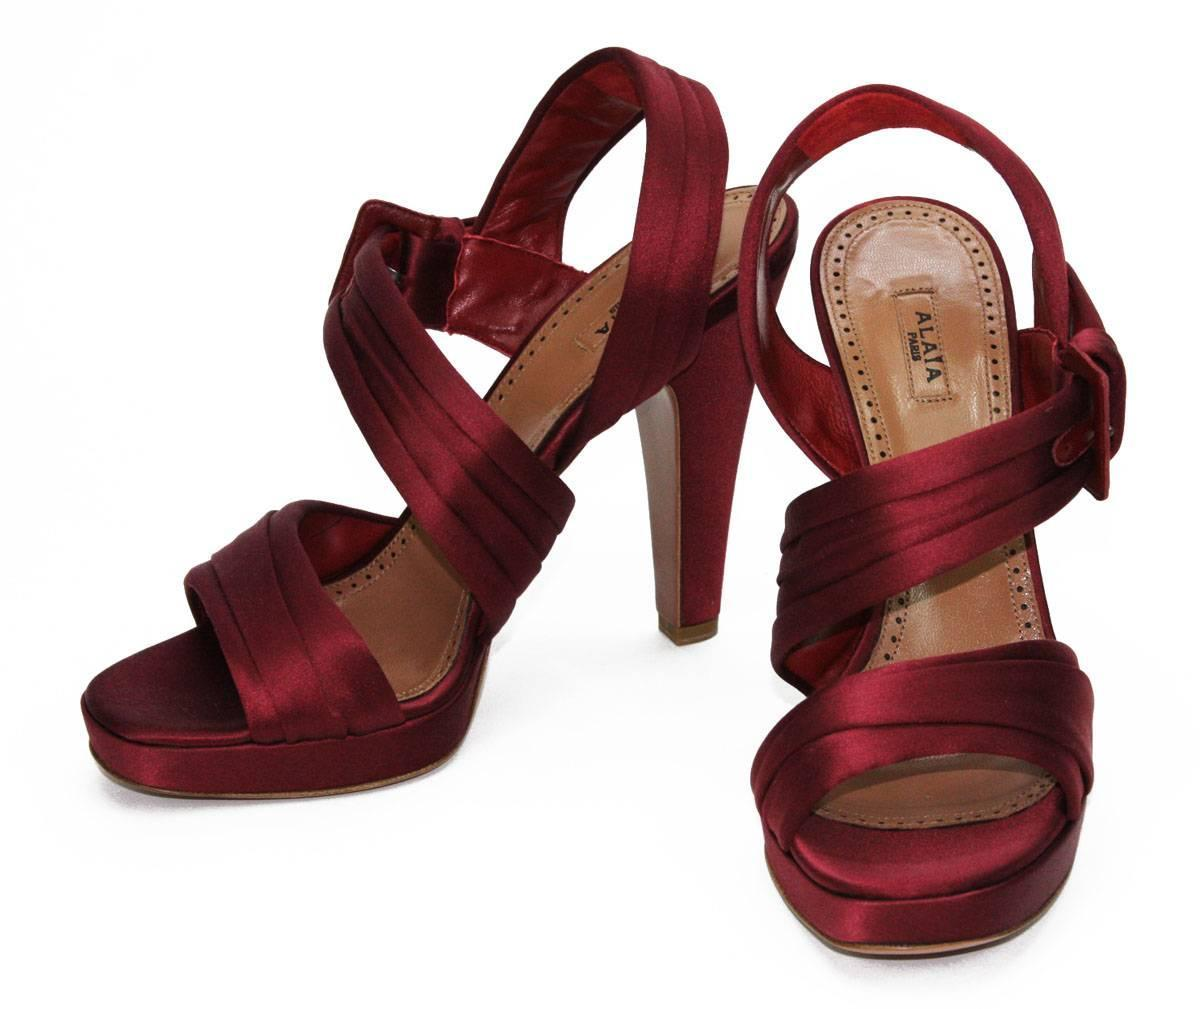 new azzedine alaia satin maroon platform shoes sandals it